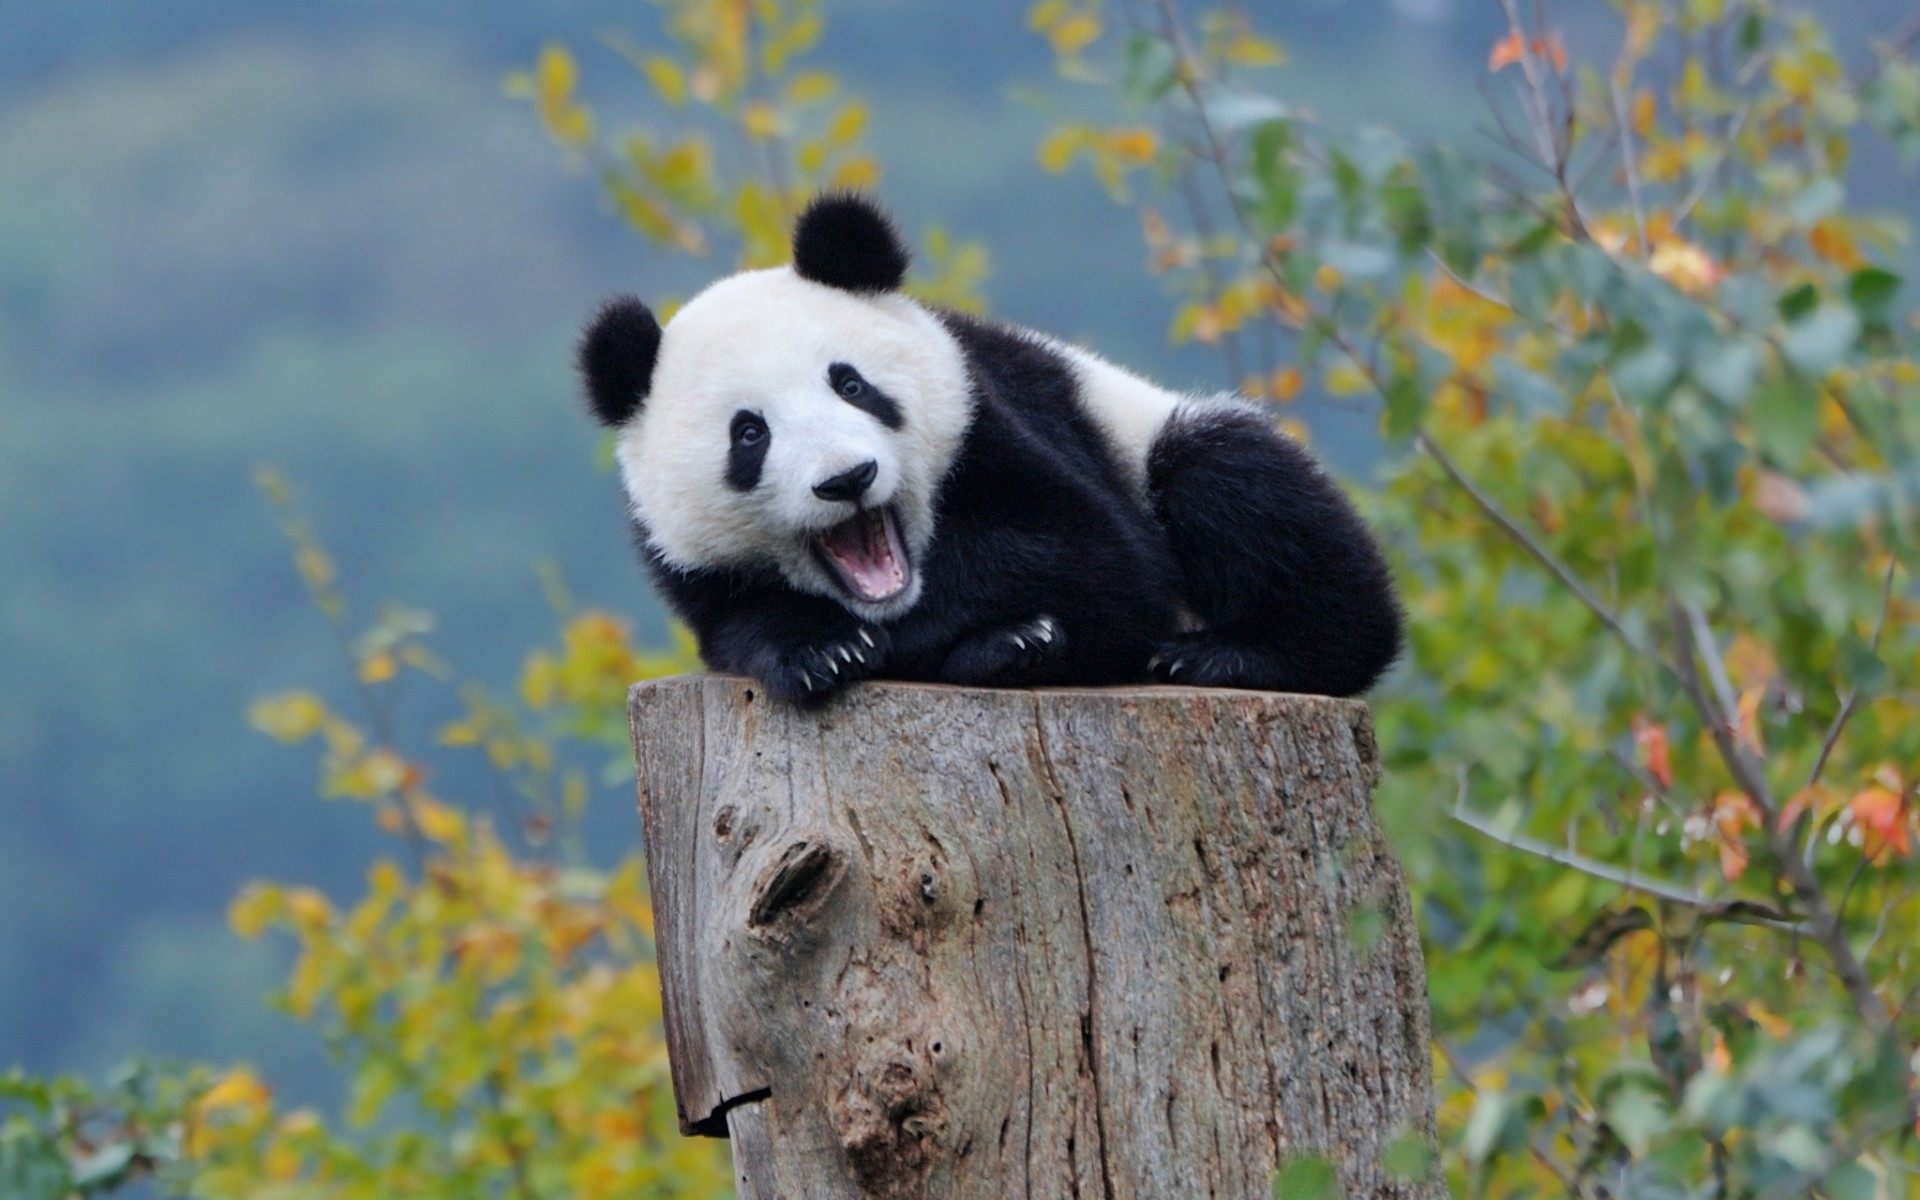 Cute-Baby-Panda-Wallpapers-053.jpg